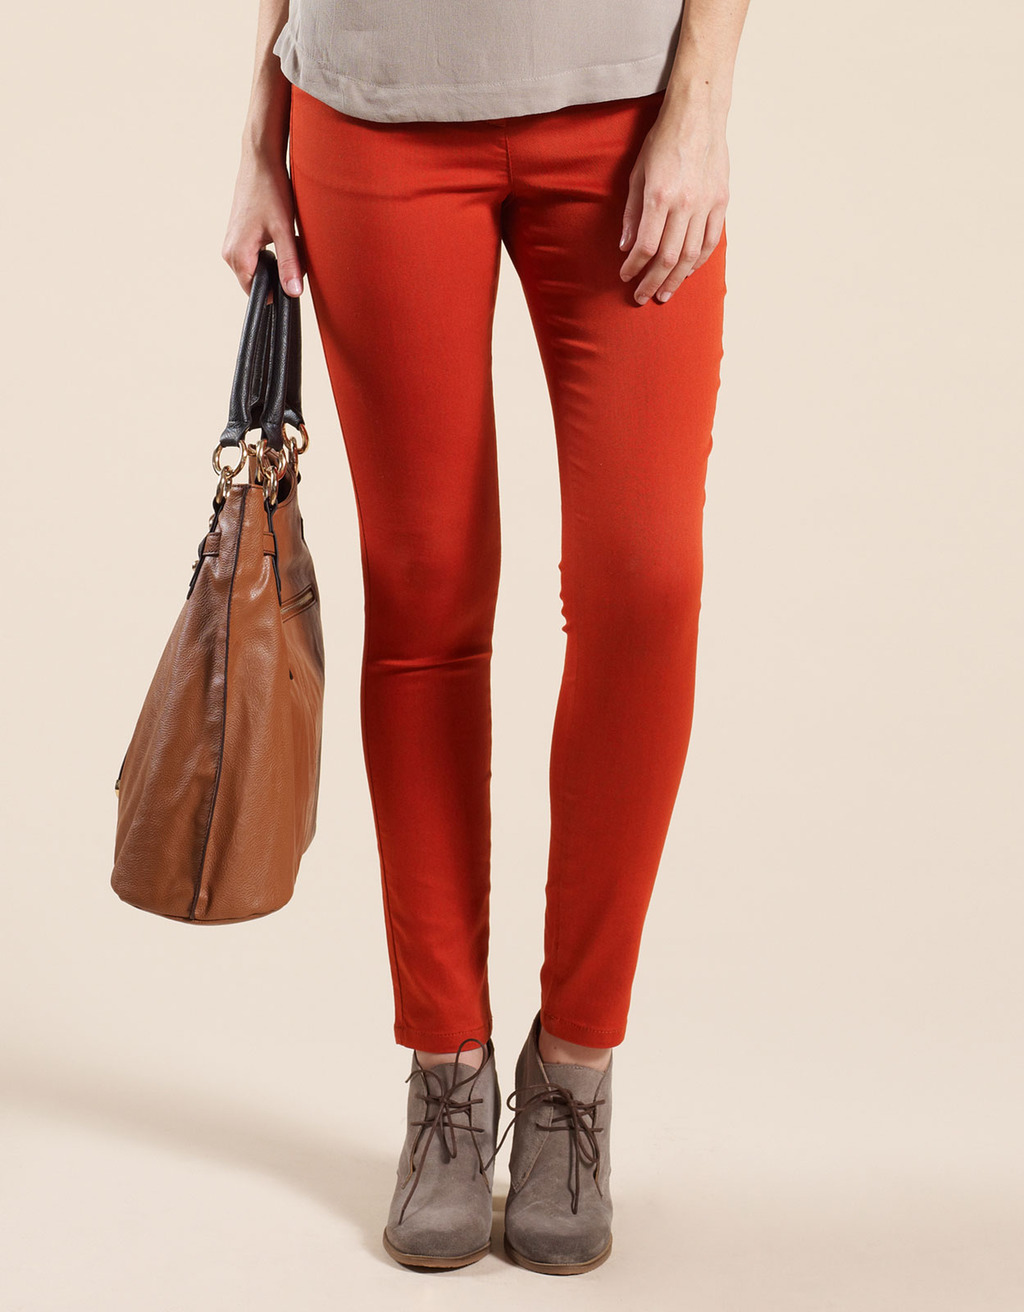 Nadine Skinny Jean - style: skinny leg; pattern: plain; pocket detail: traditional 5 pocket; waist: mid/regular rise; predominant colour: bright orange; occasions: casual; length: ankle length; fibres: cotton - stretch; texture group: denim; pattern type: fabric; pattern size: standard